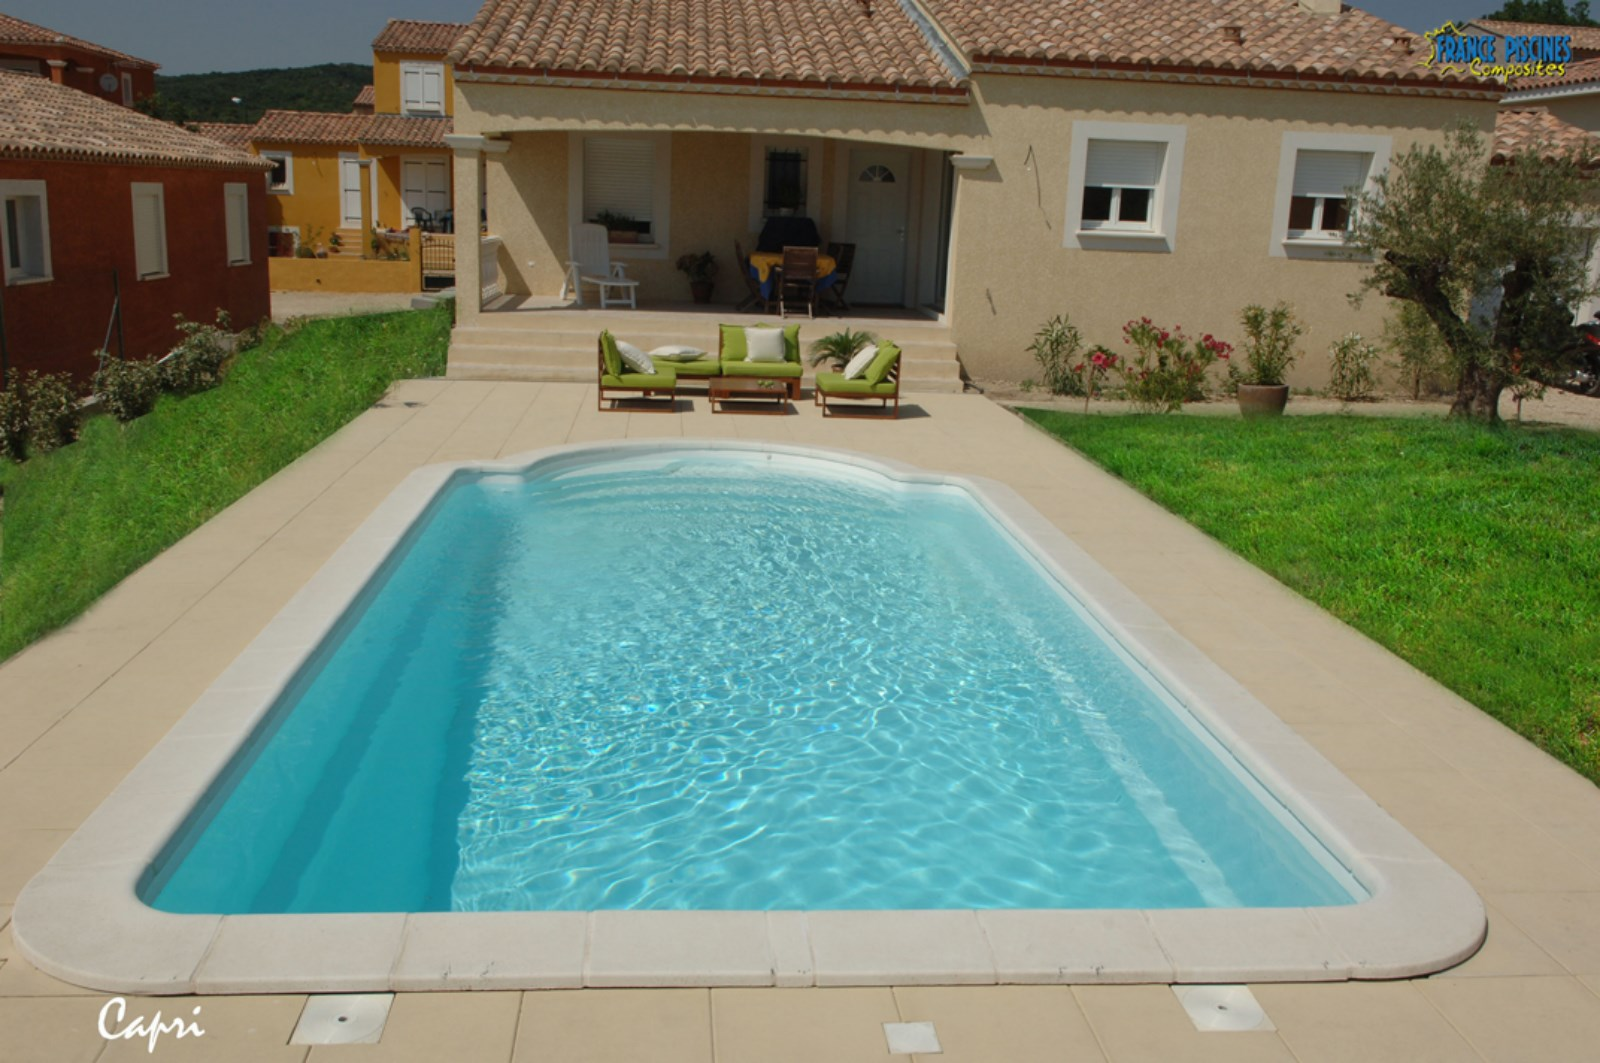 Comment installer une piscine coque polyester piscine for Installer une piscine